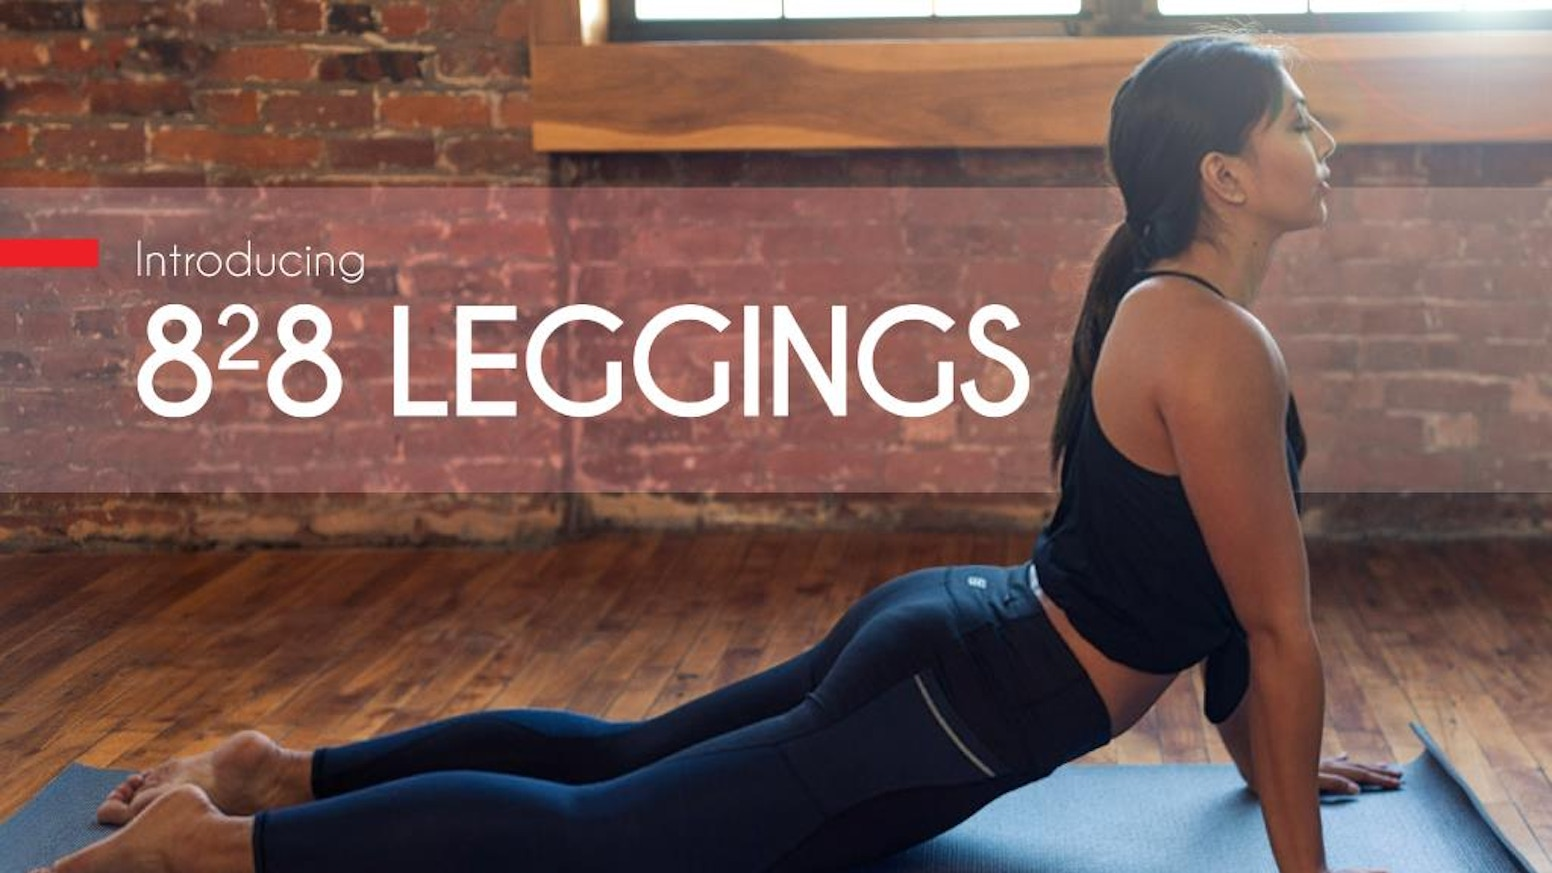 The world's first bacteria-fighting, odor-killing, sweat-proof legging designed to last you from dawn to dusk.